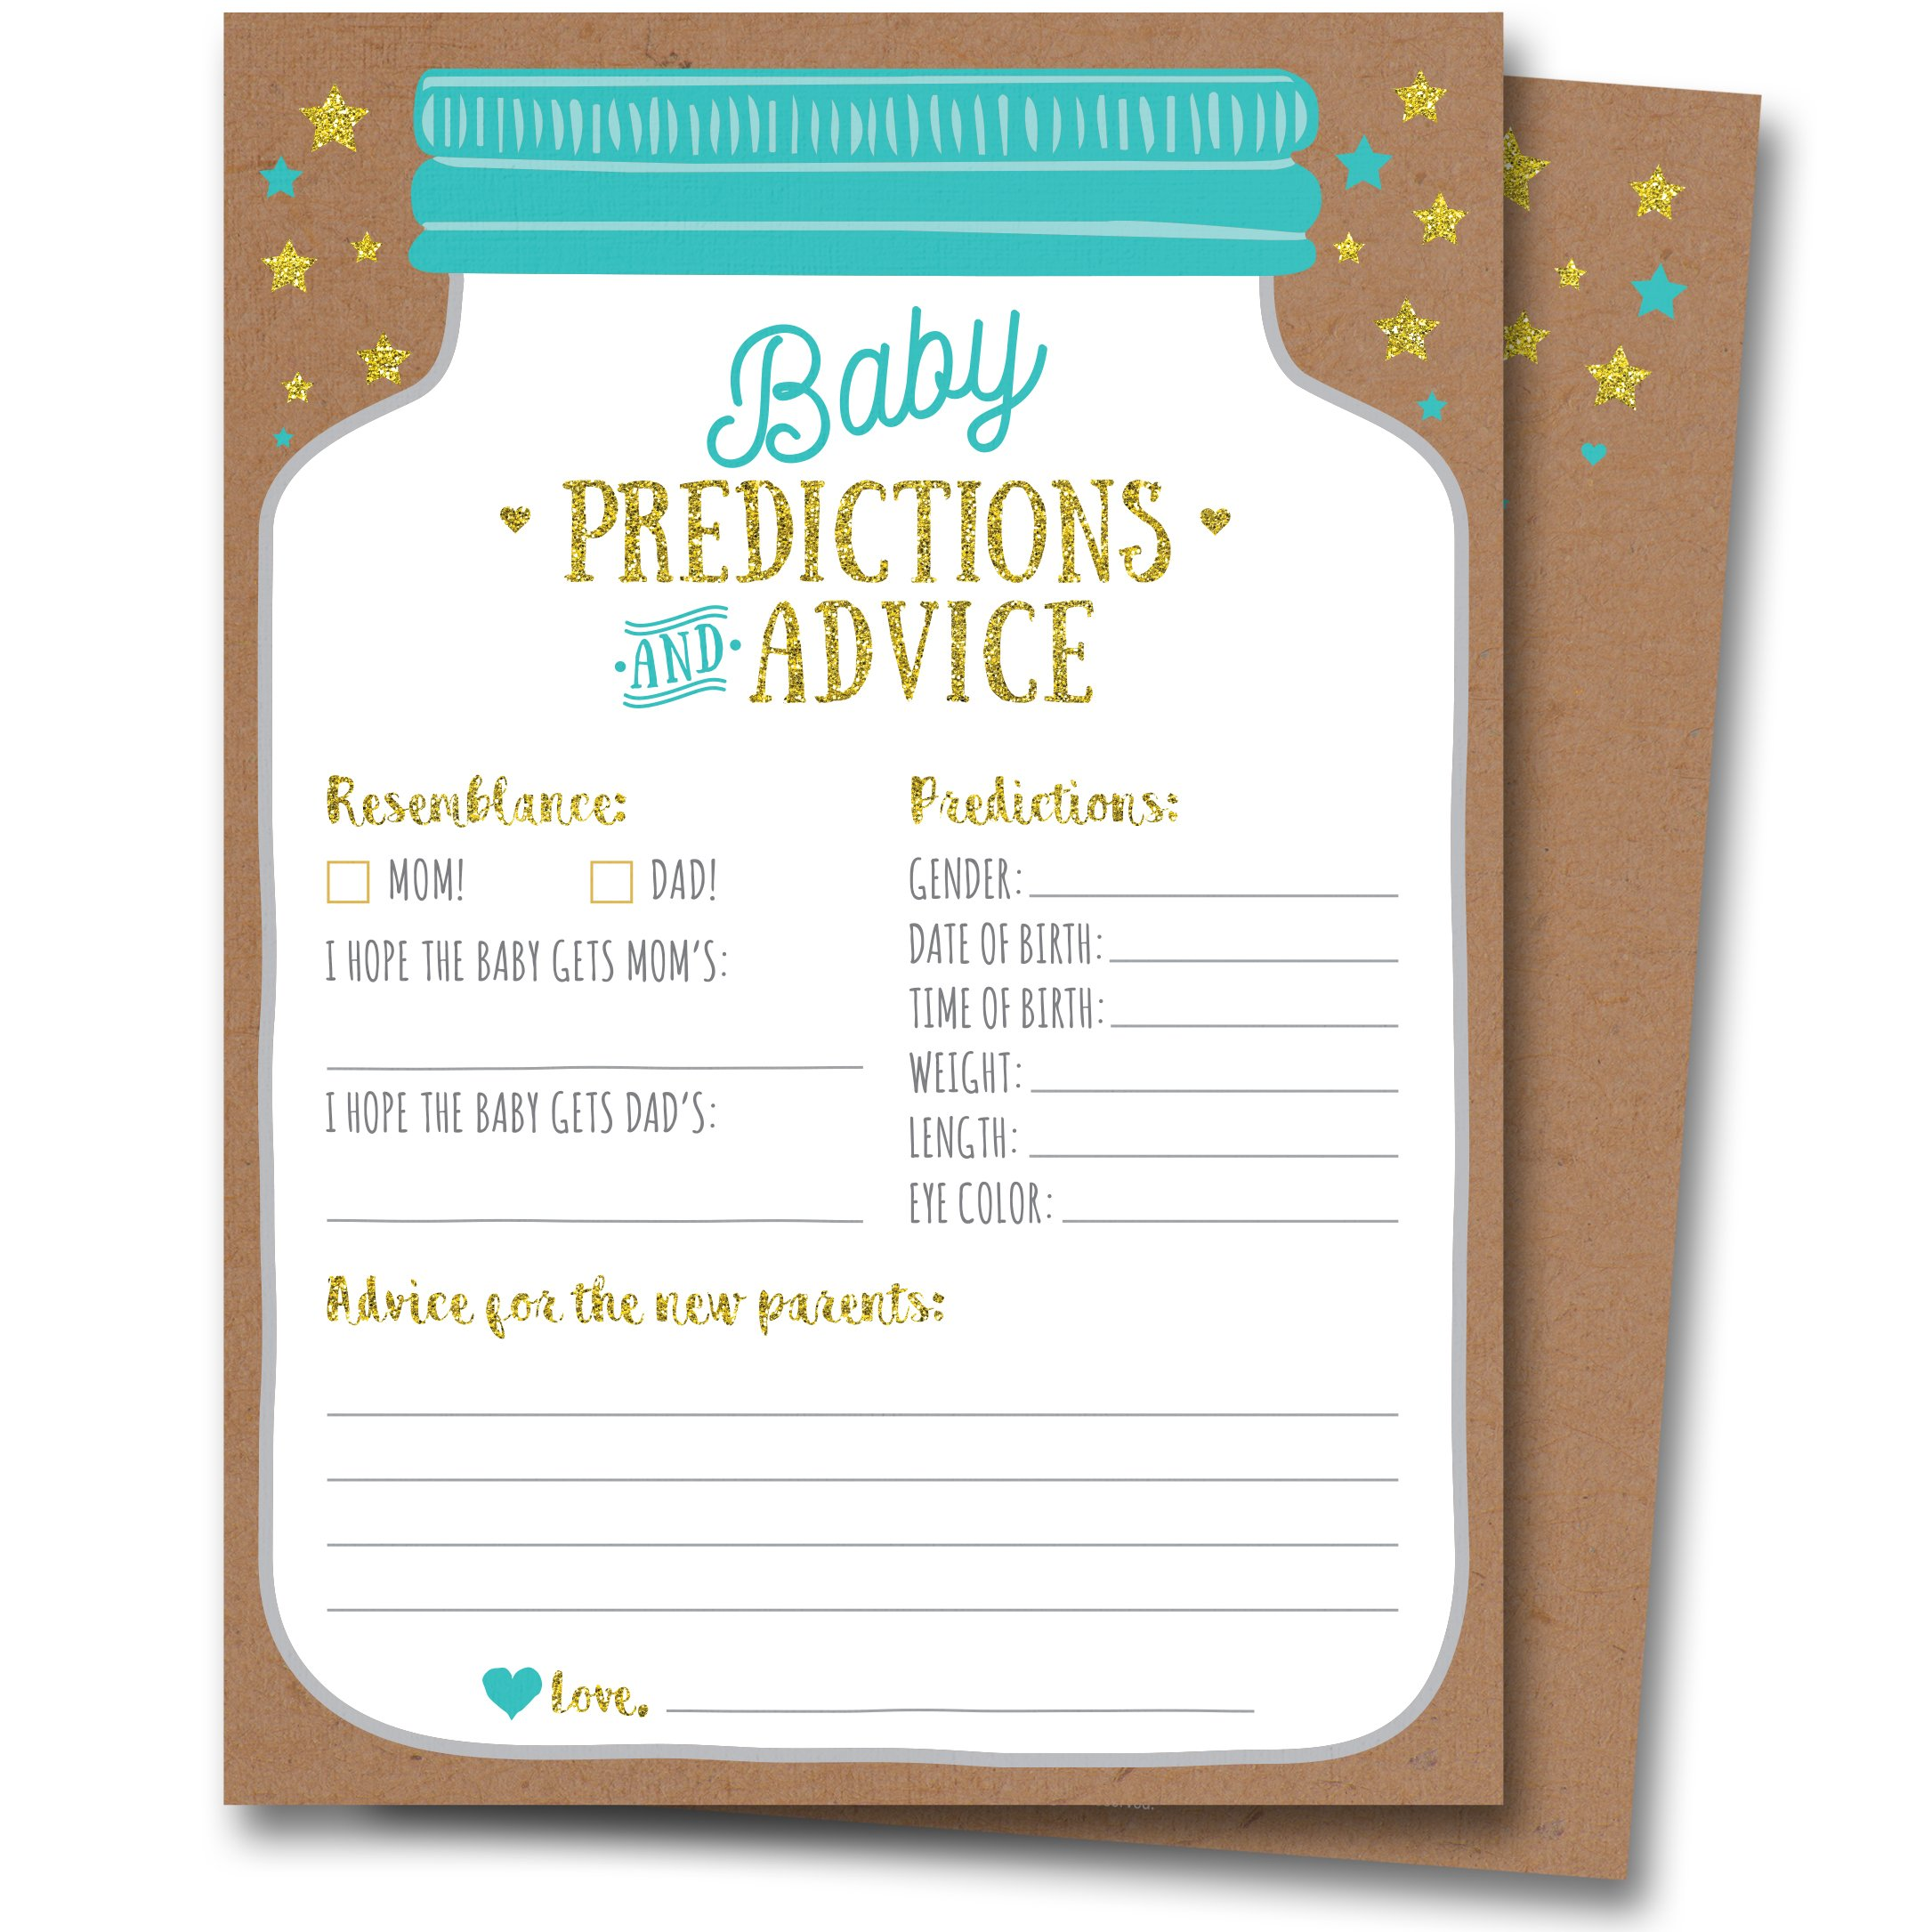 50 Mason Jar Baby Shower Prediction and Advice Cards - Gender Neutral Boy or Girl, Baby Shower Games Favors